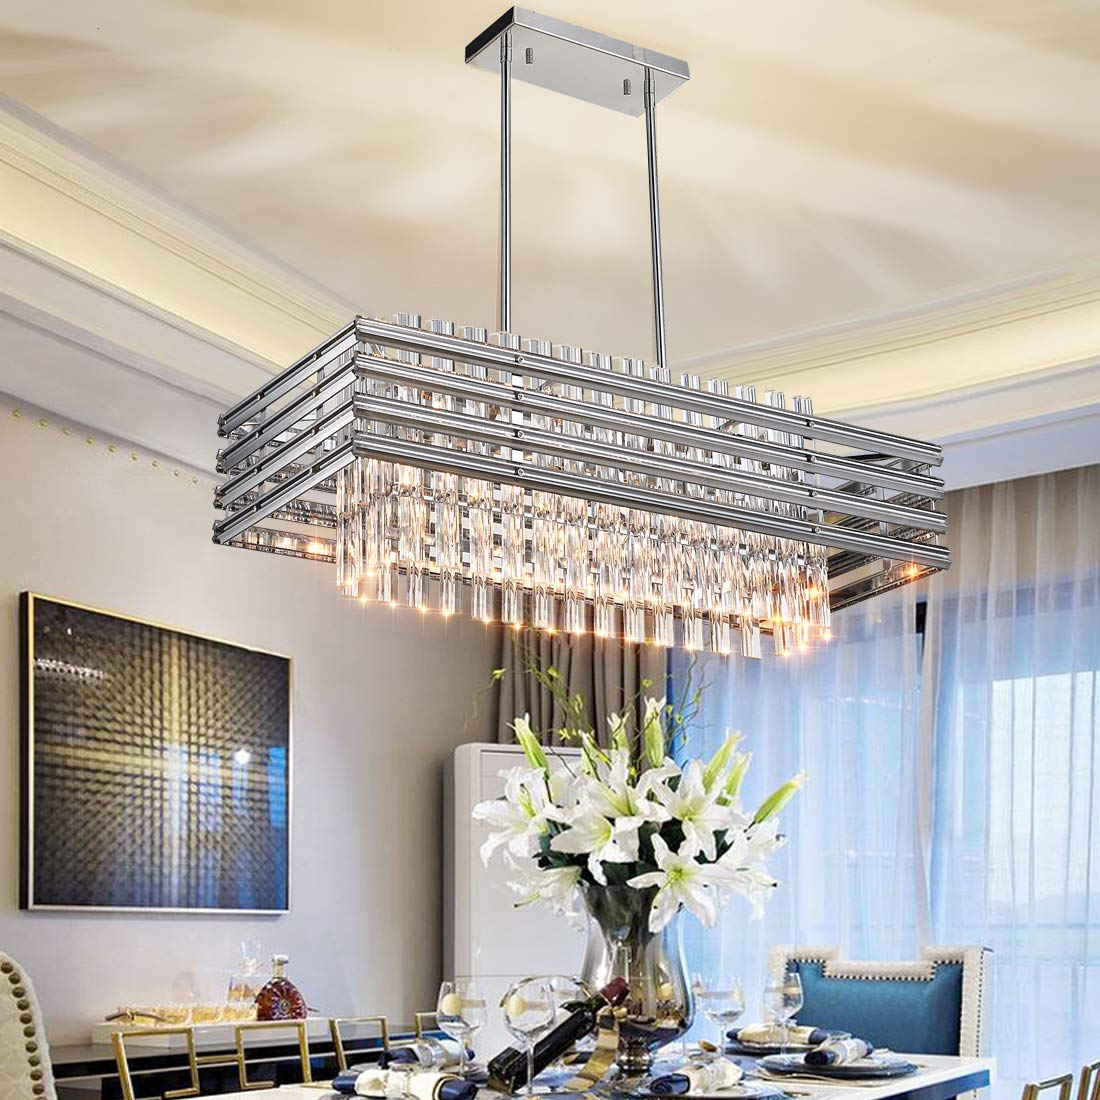 """Dining Room Chandelier,Modern Rectangle Pendant Light,Crystal Chandelier,L31.5"""" x W13.8"""" x H48.5"""",6 Light, Adjustable Height,Polished Chrome,UL Listed by TZOE"""